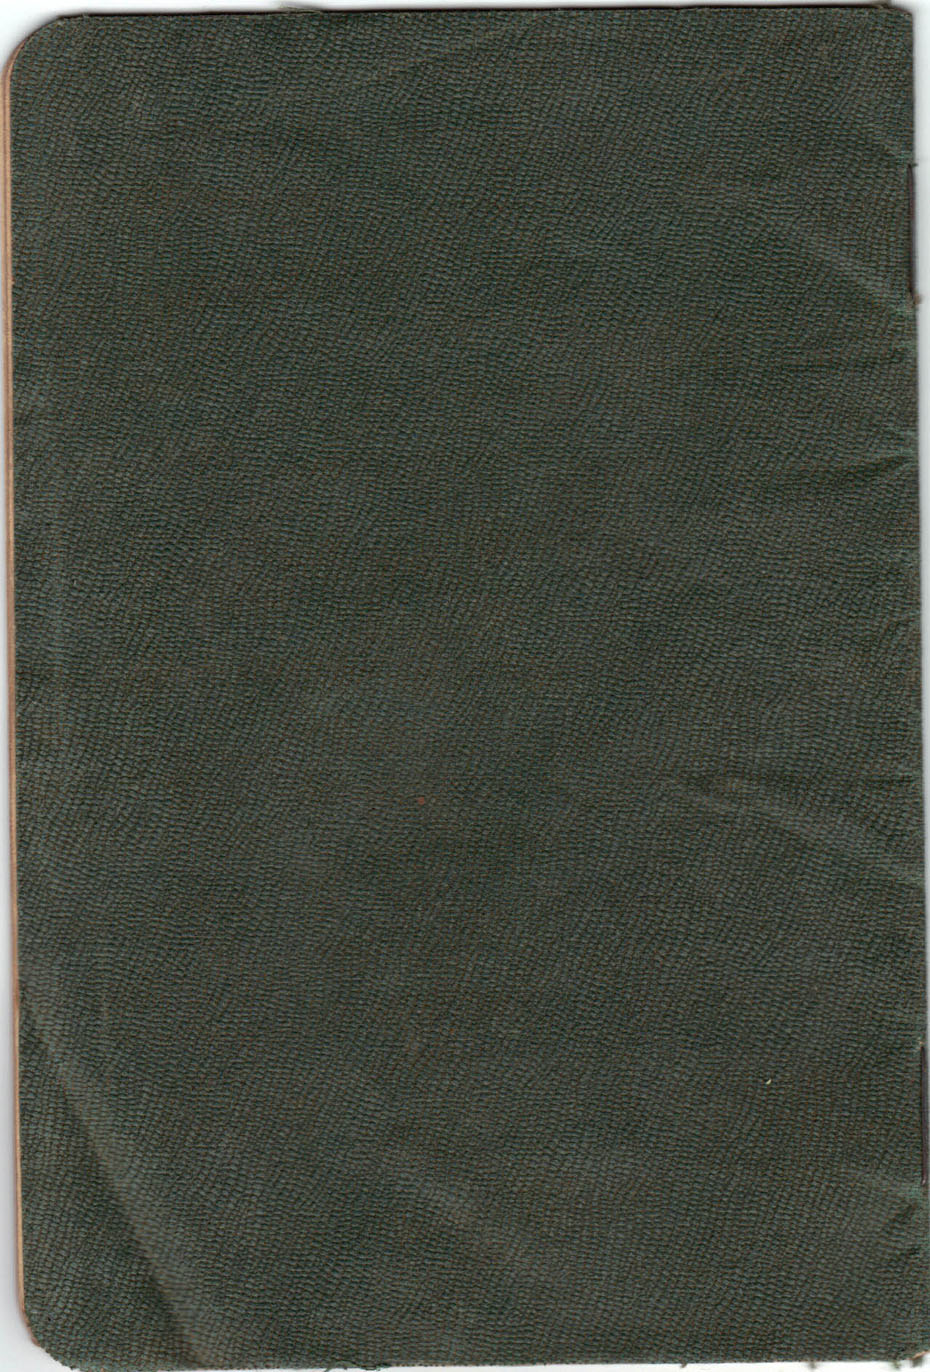 Polya passport p26